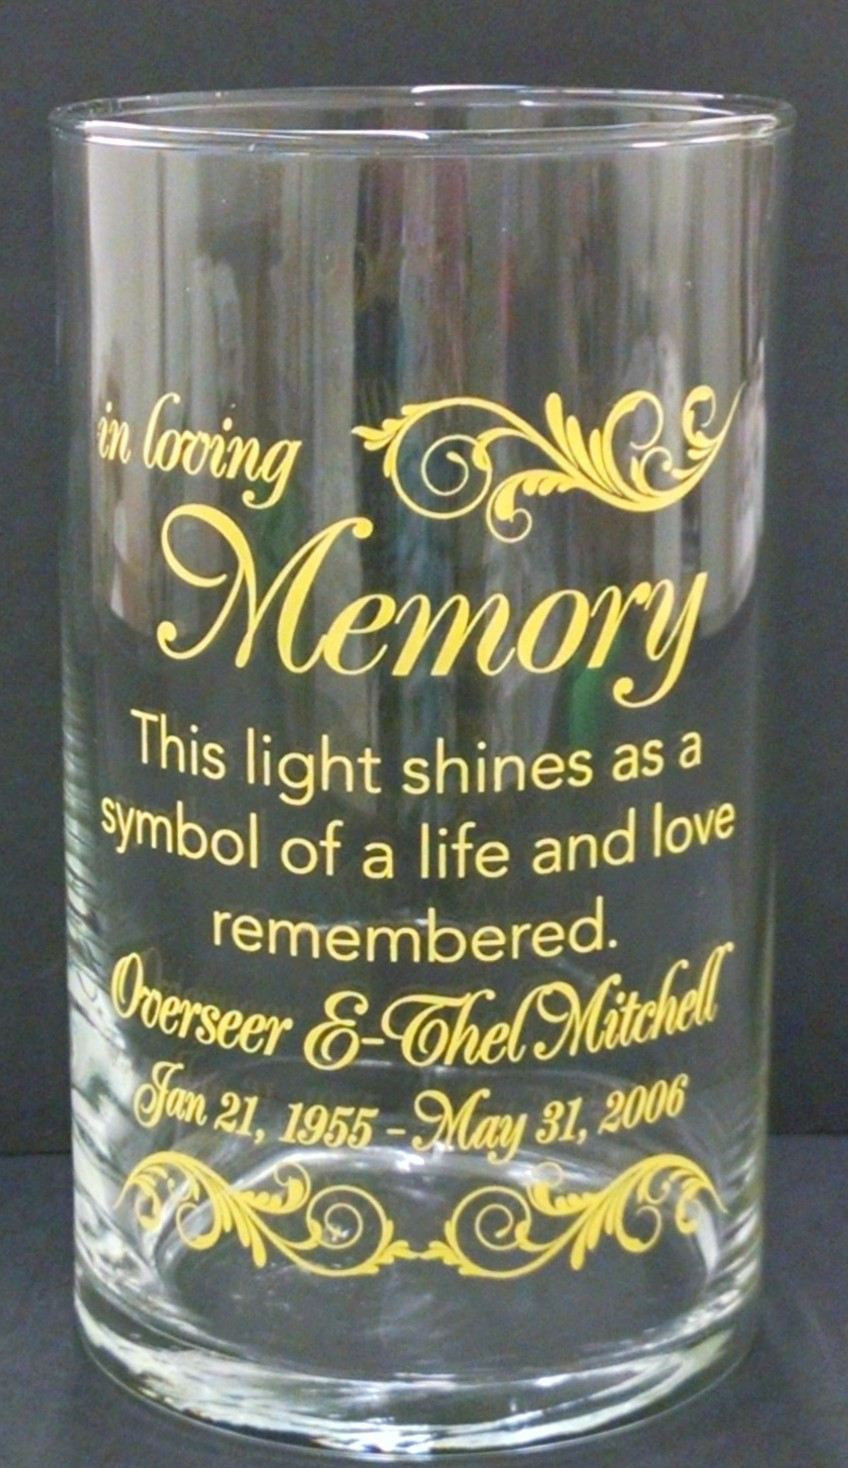 Memorial Candle -  - Personalized Candle Holders - Wedding Candles - 19